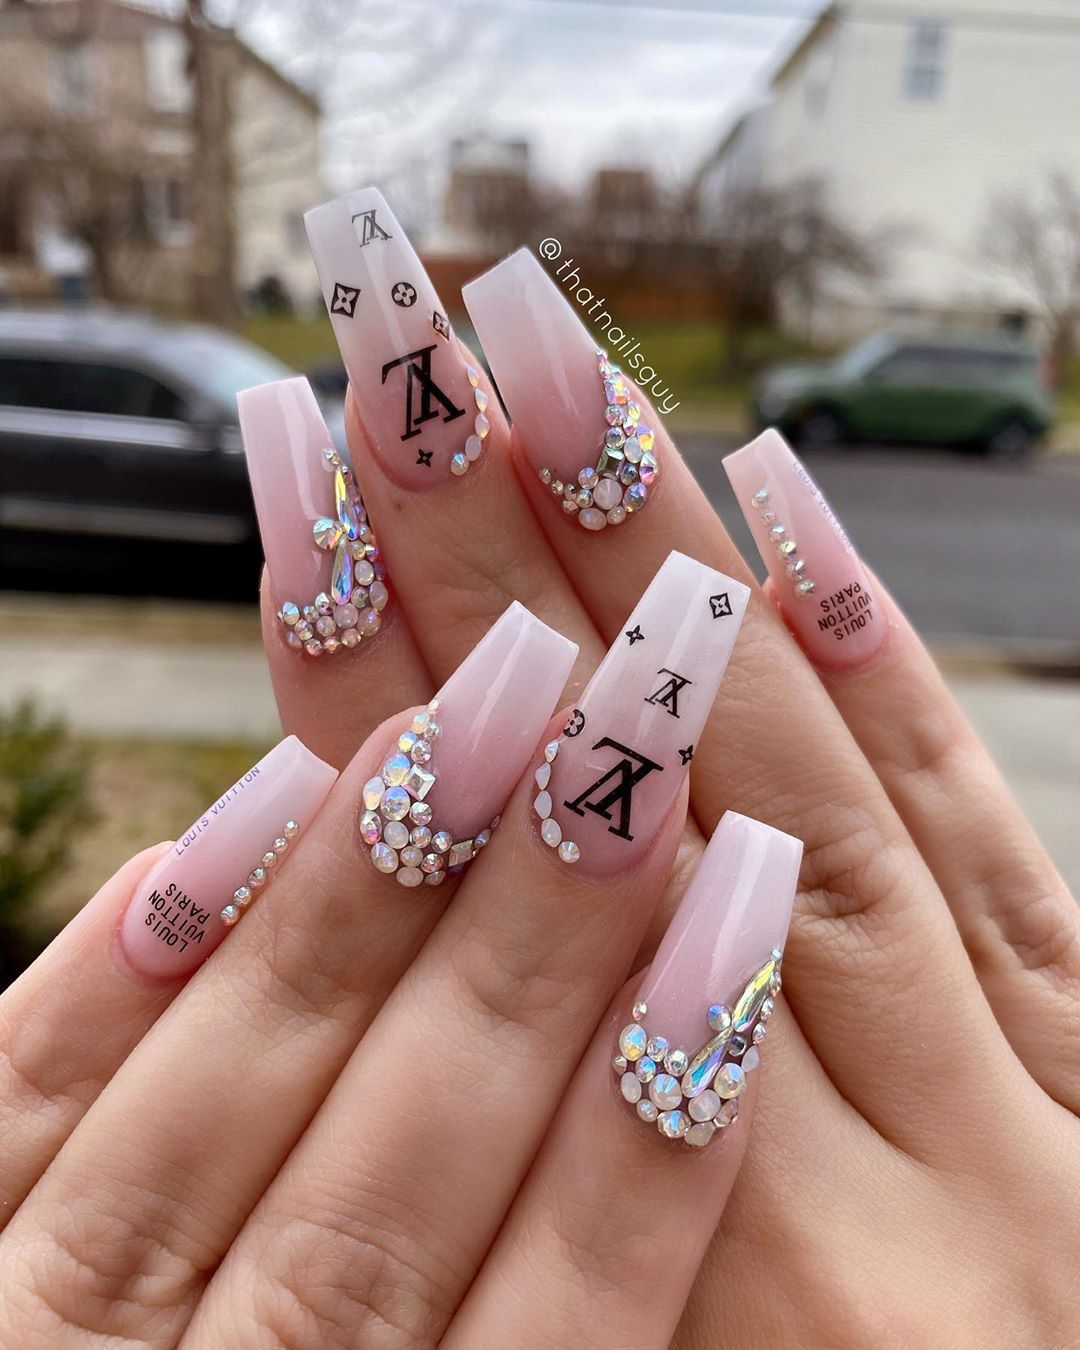 Nails By Andy Sam On Instagram Louis Vuitton Vibes Cute Louis Vui In 2020 Louis Vuitton Nails Gucci Nails Luxury Nails